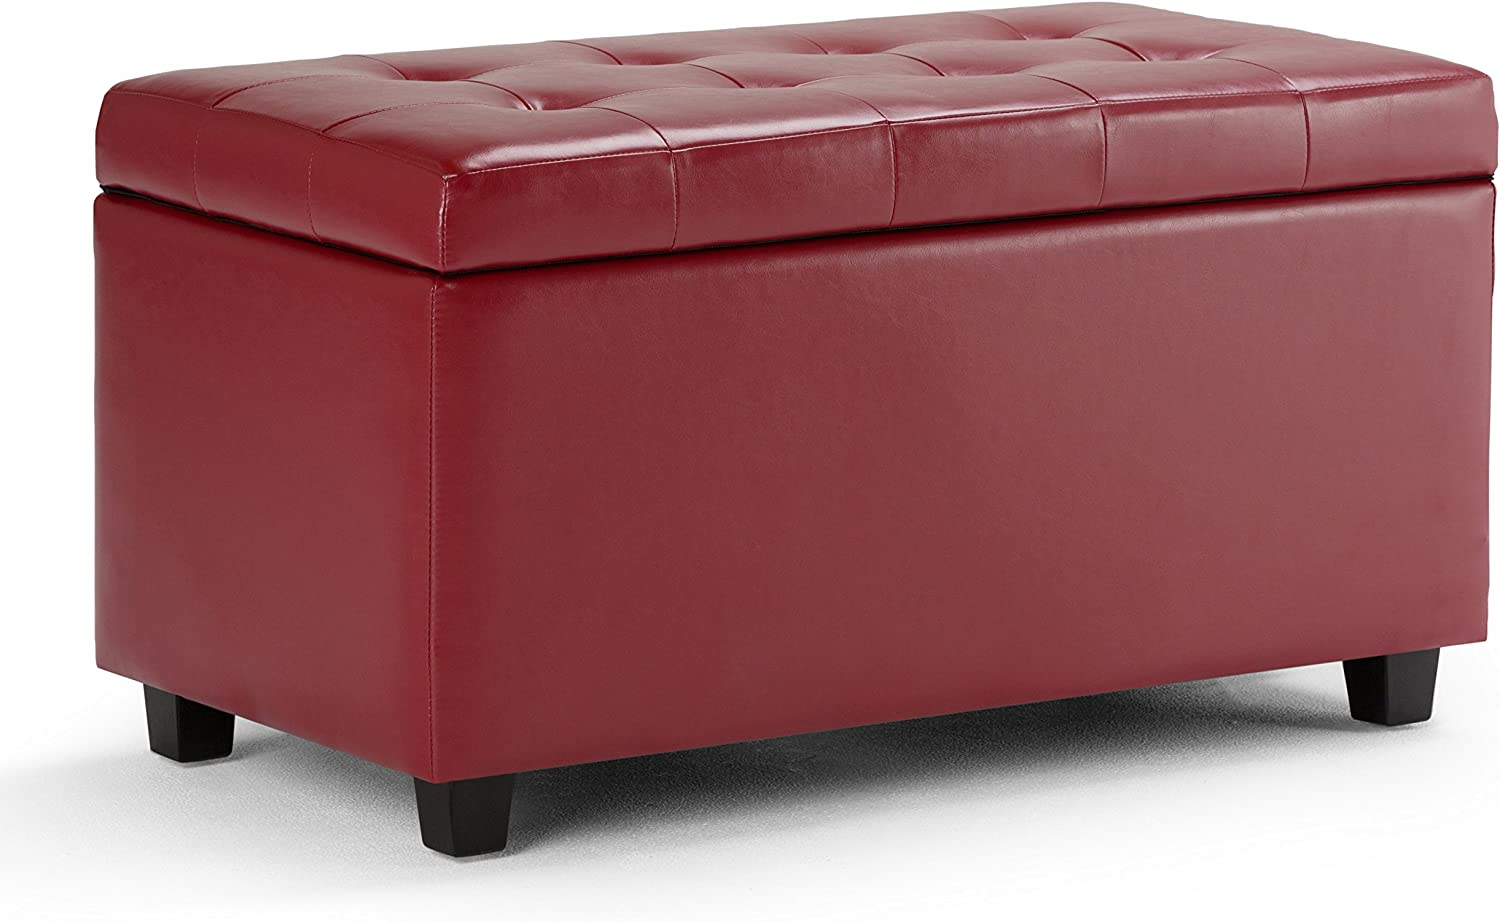 Simpli Home AY-S-38-RD Cosmopolitan 34 inch Wide ContemporaryStorage Ottoman in Red Faux Leather